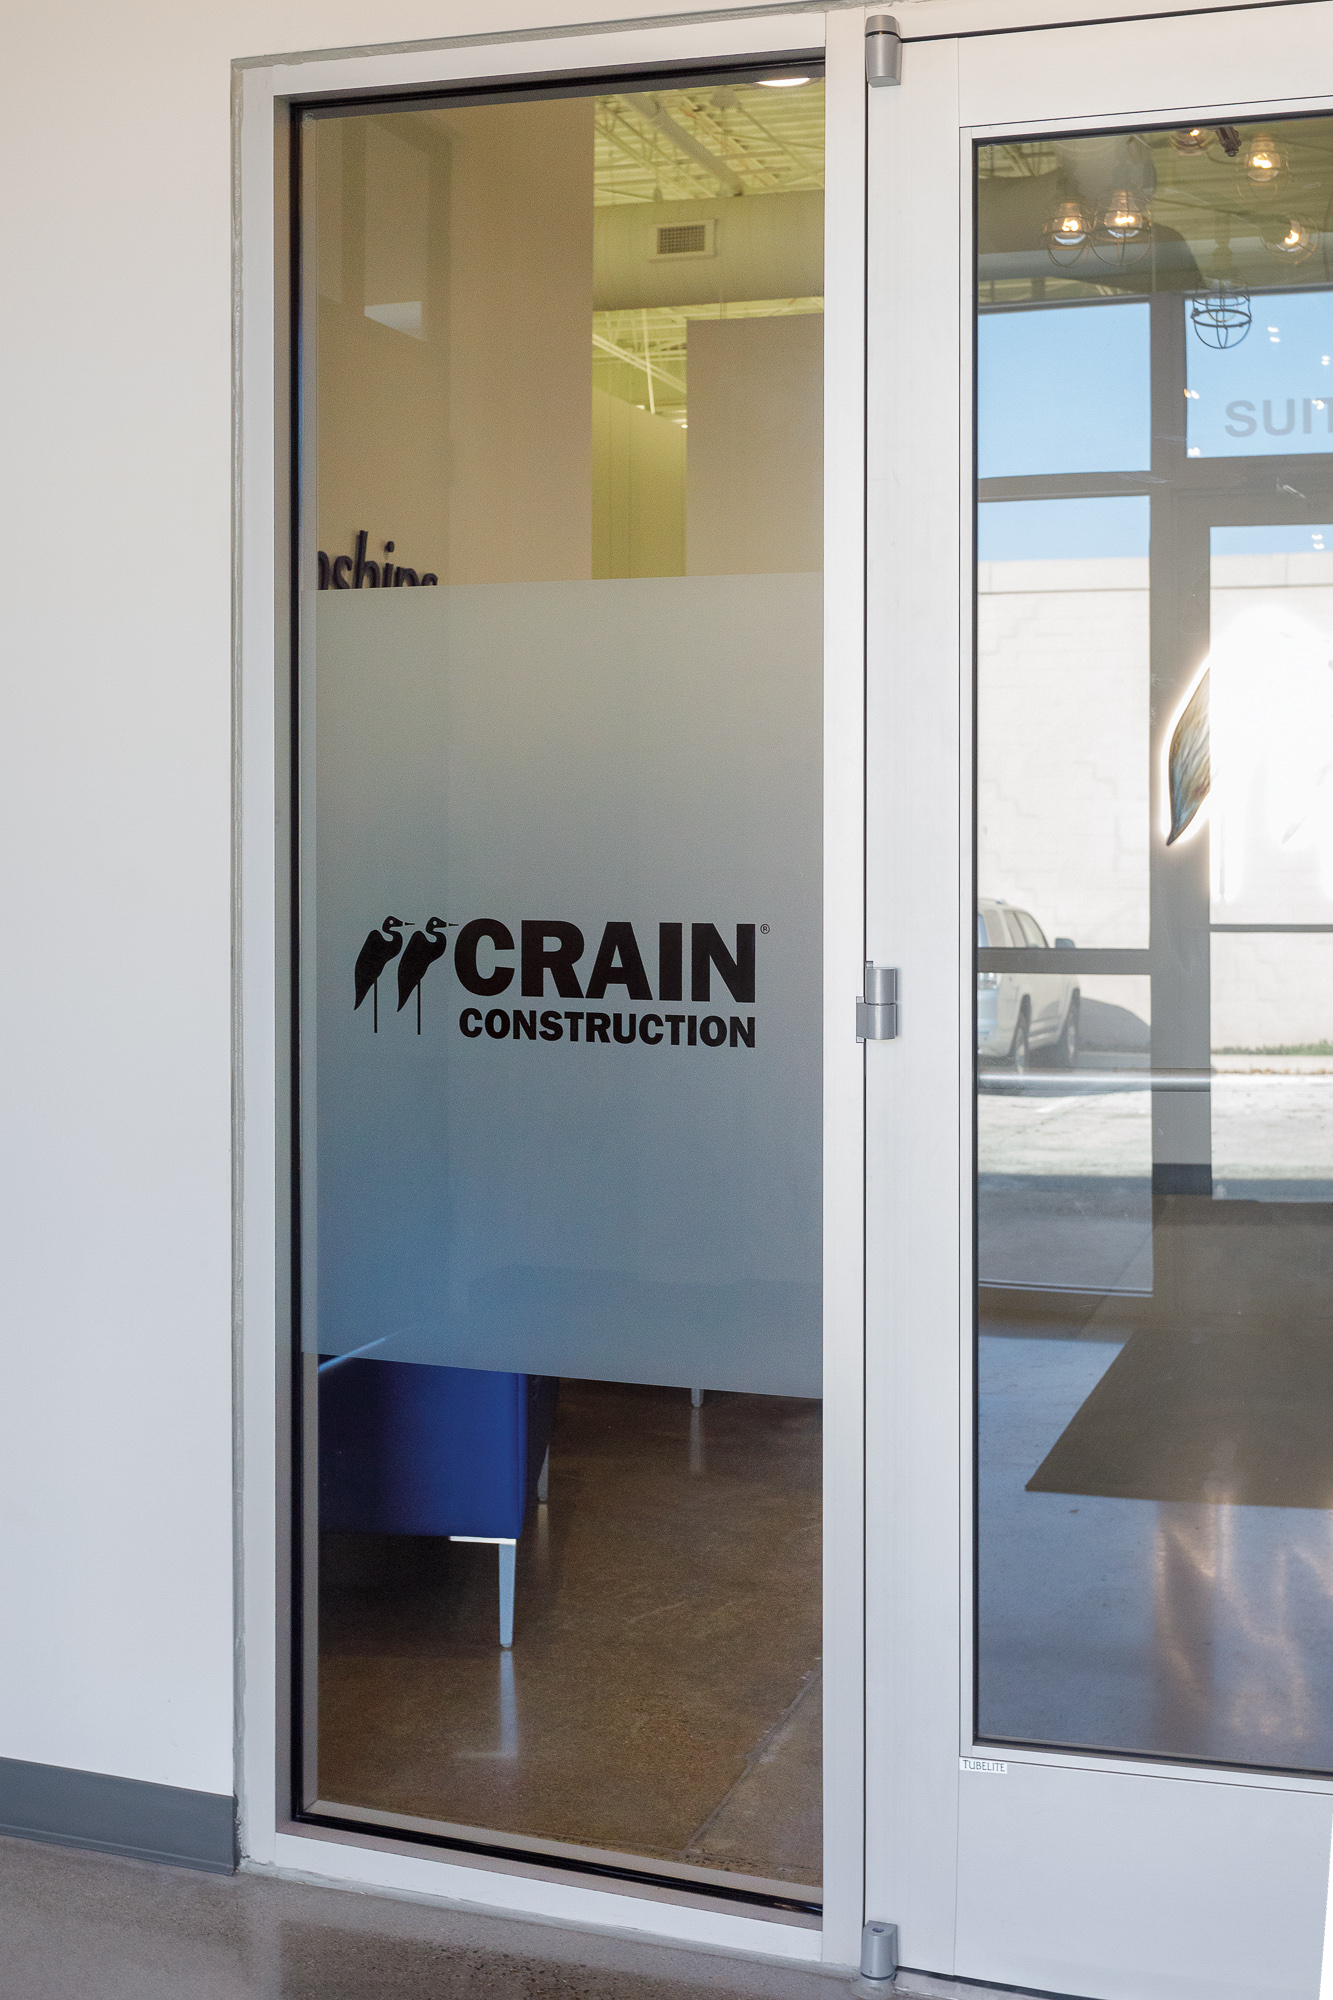 Crain Construction_Brand Identity Signage_Commercial Window Film_MG_8014-Edit_small 2000 px.jpg